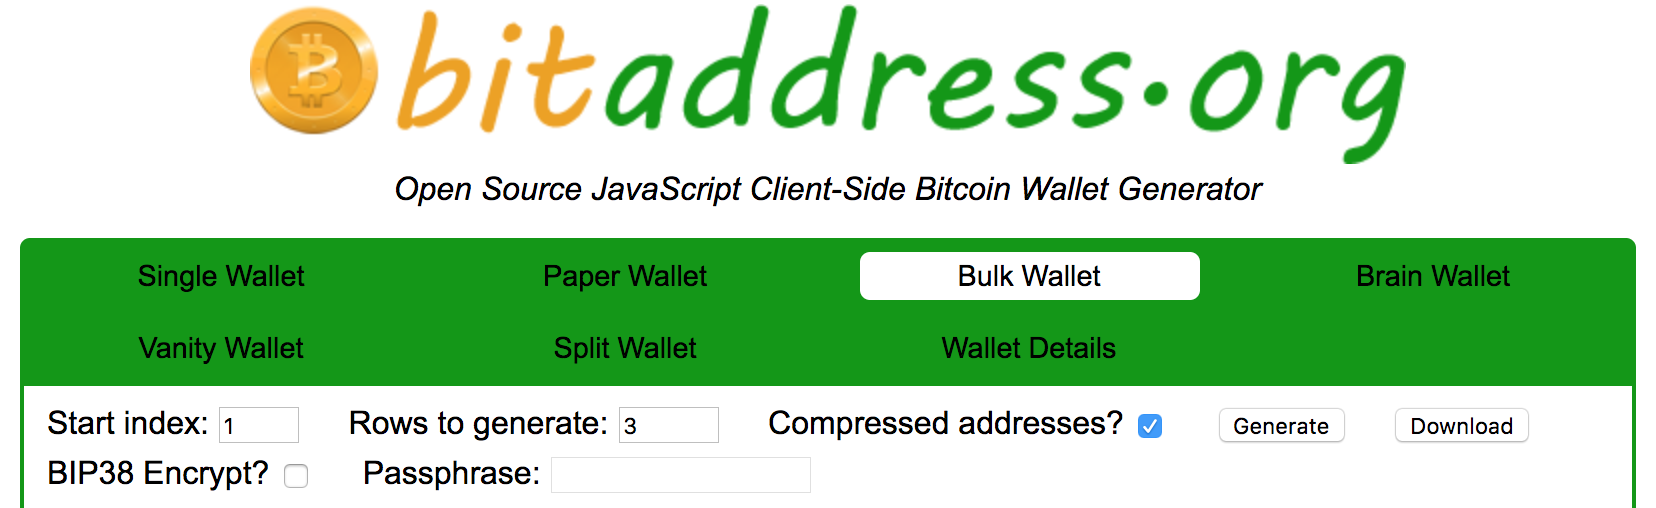 Generate and download thousands of Bitcoin wallets in a